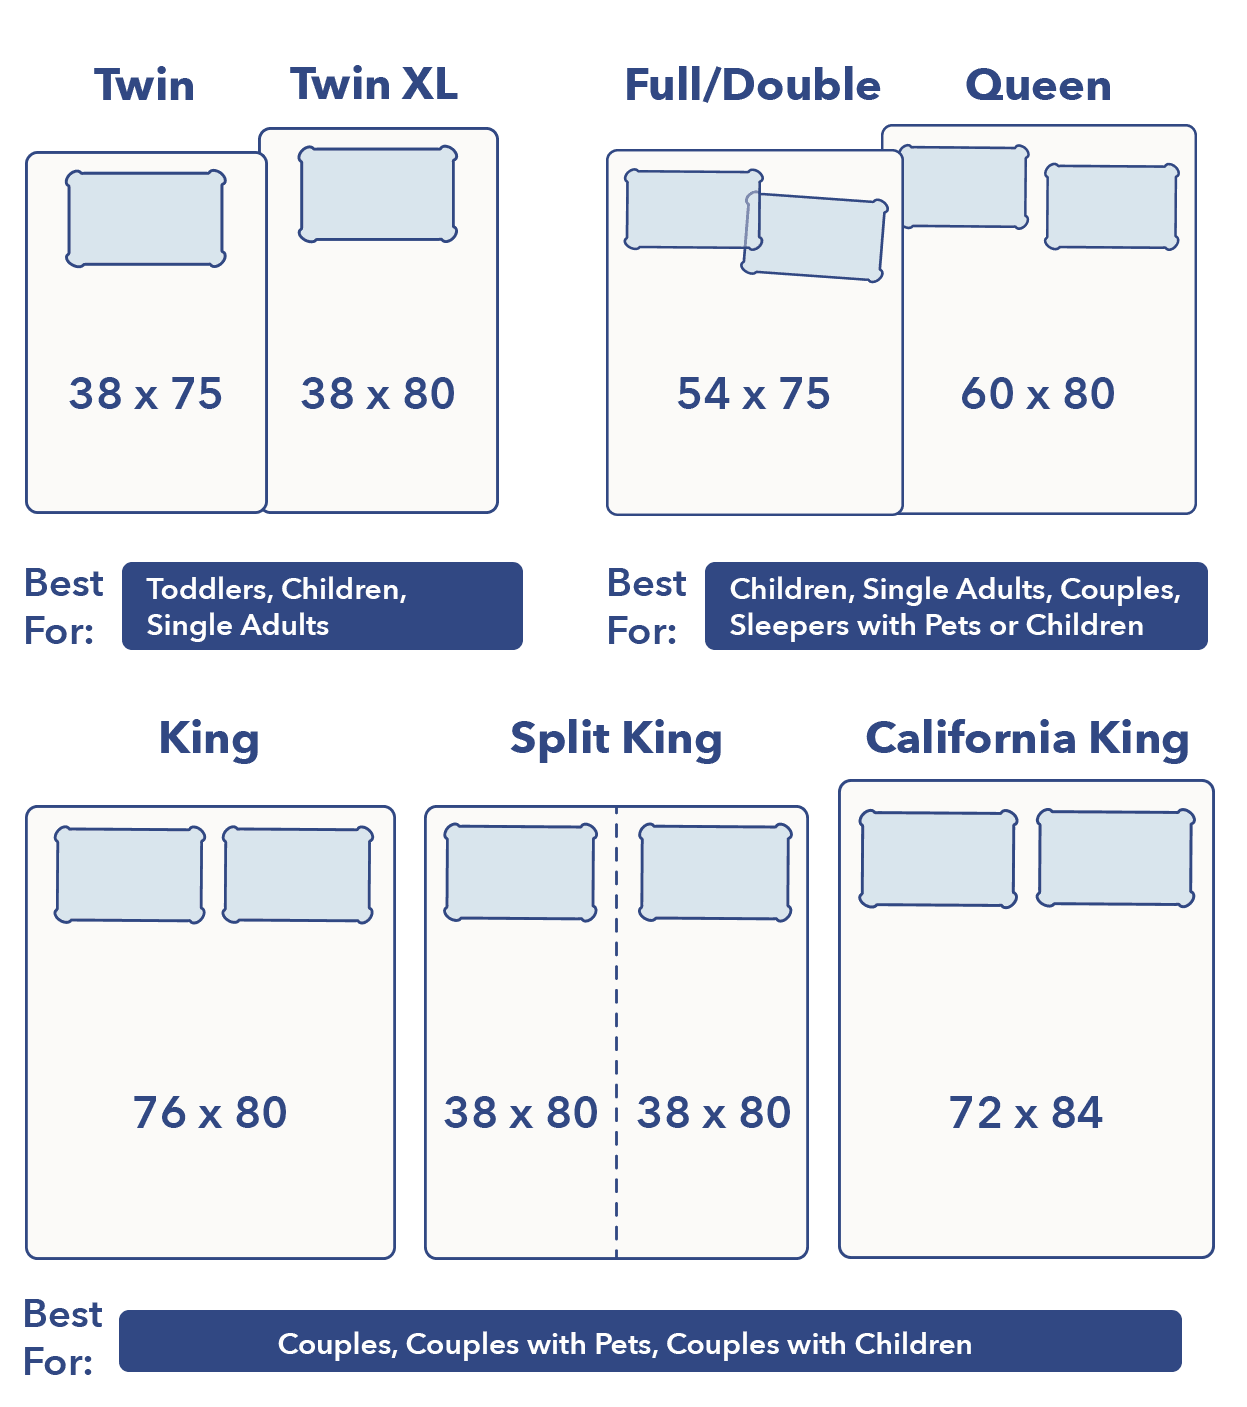 Exact Dimensions For King, Queen, And